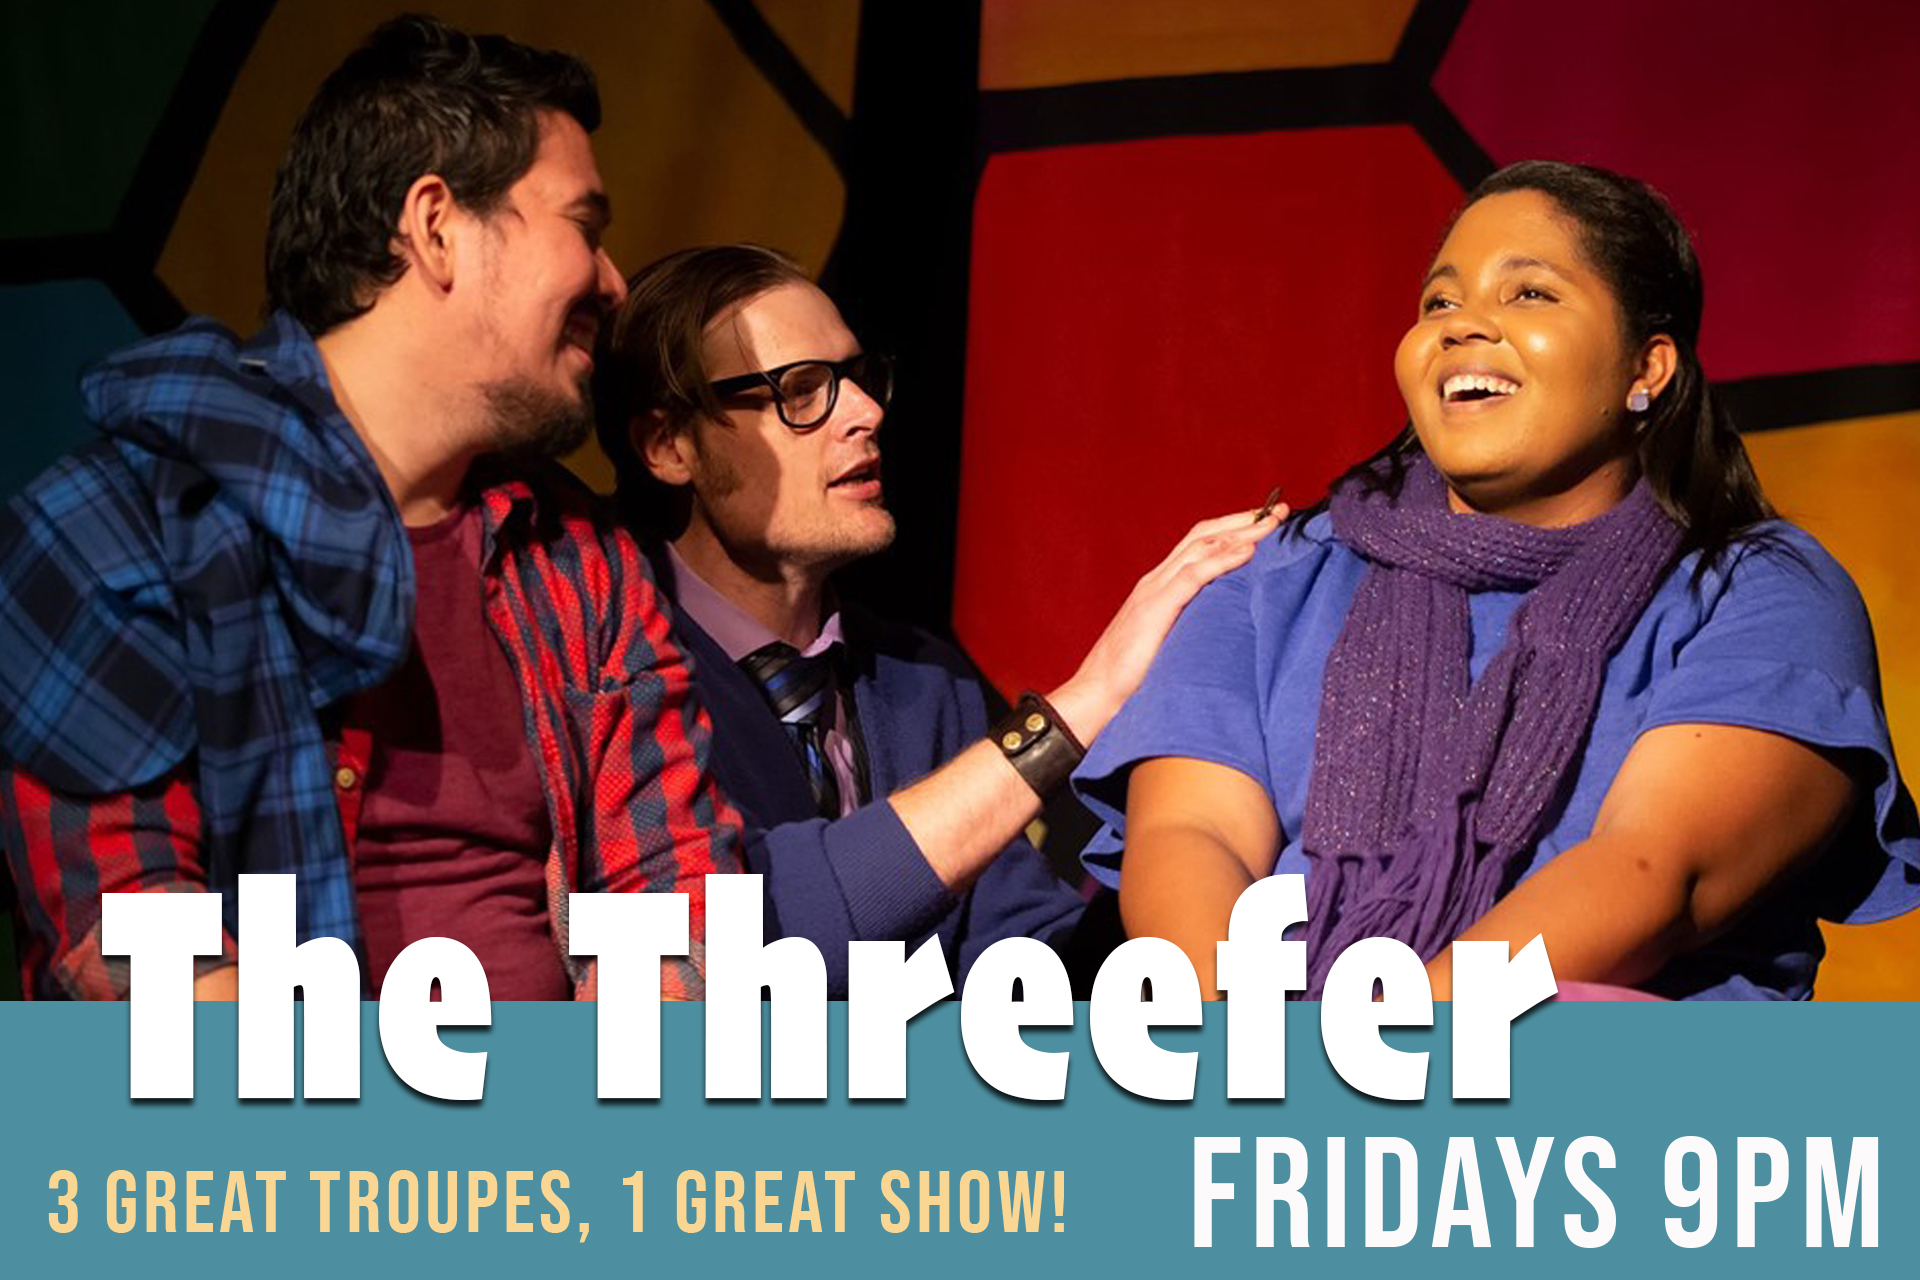 The Threefer, Friday 9pm